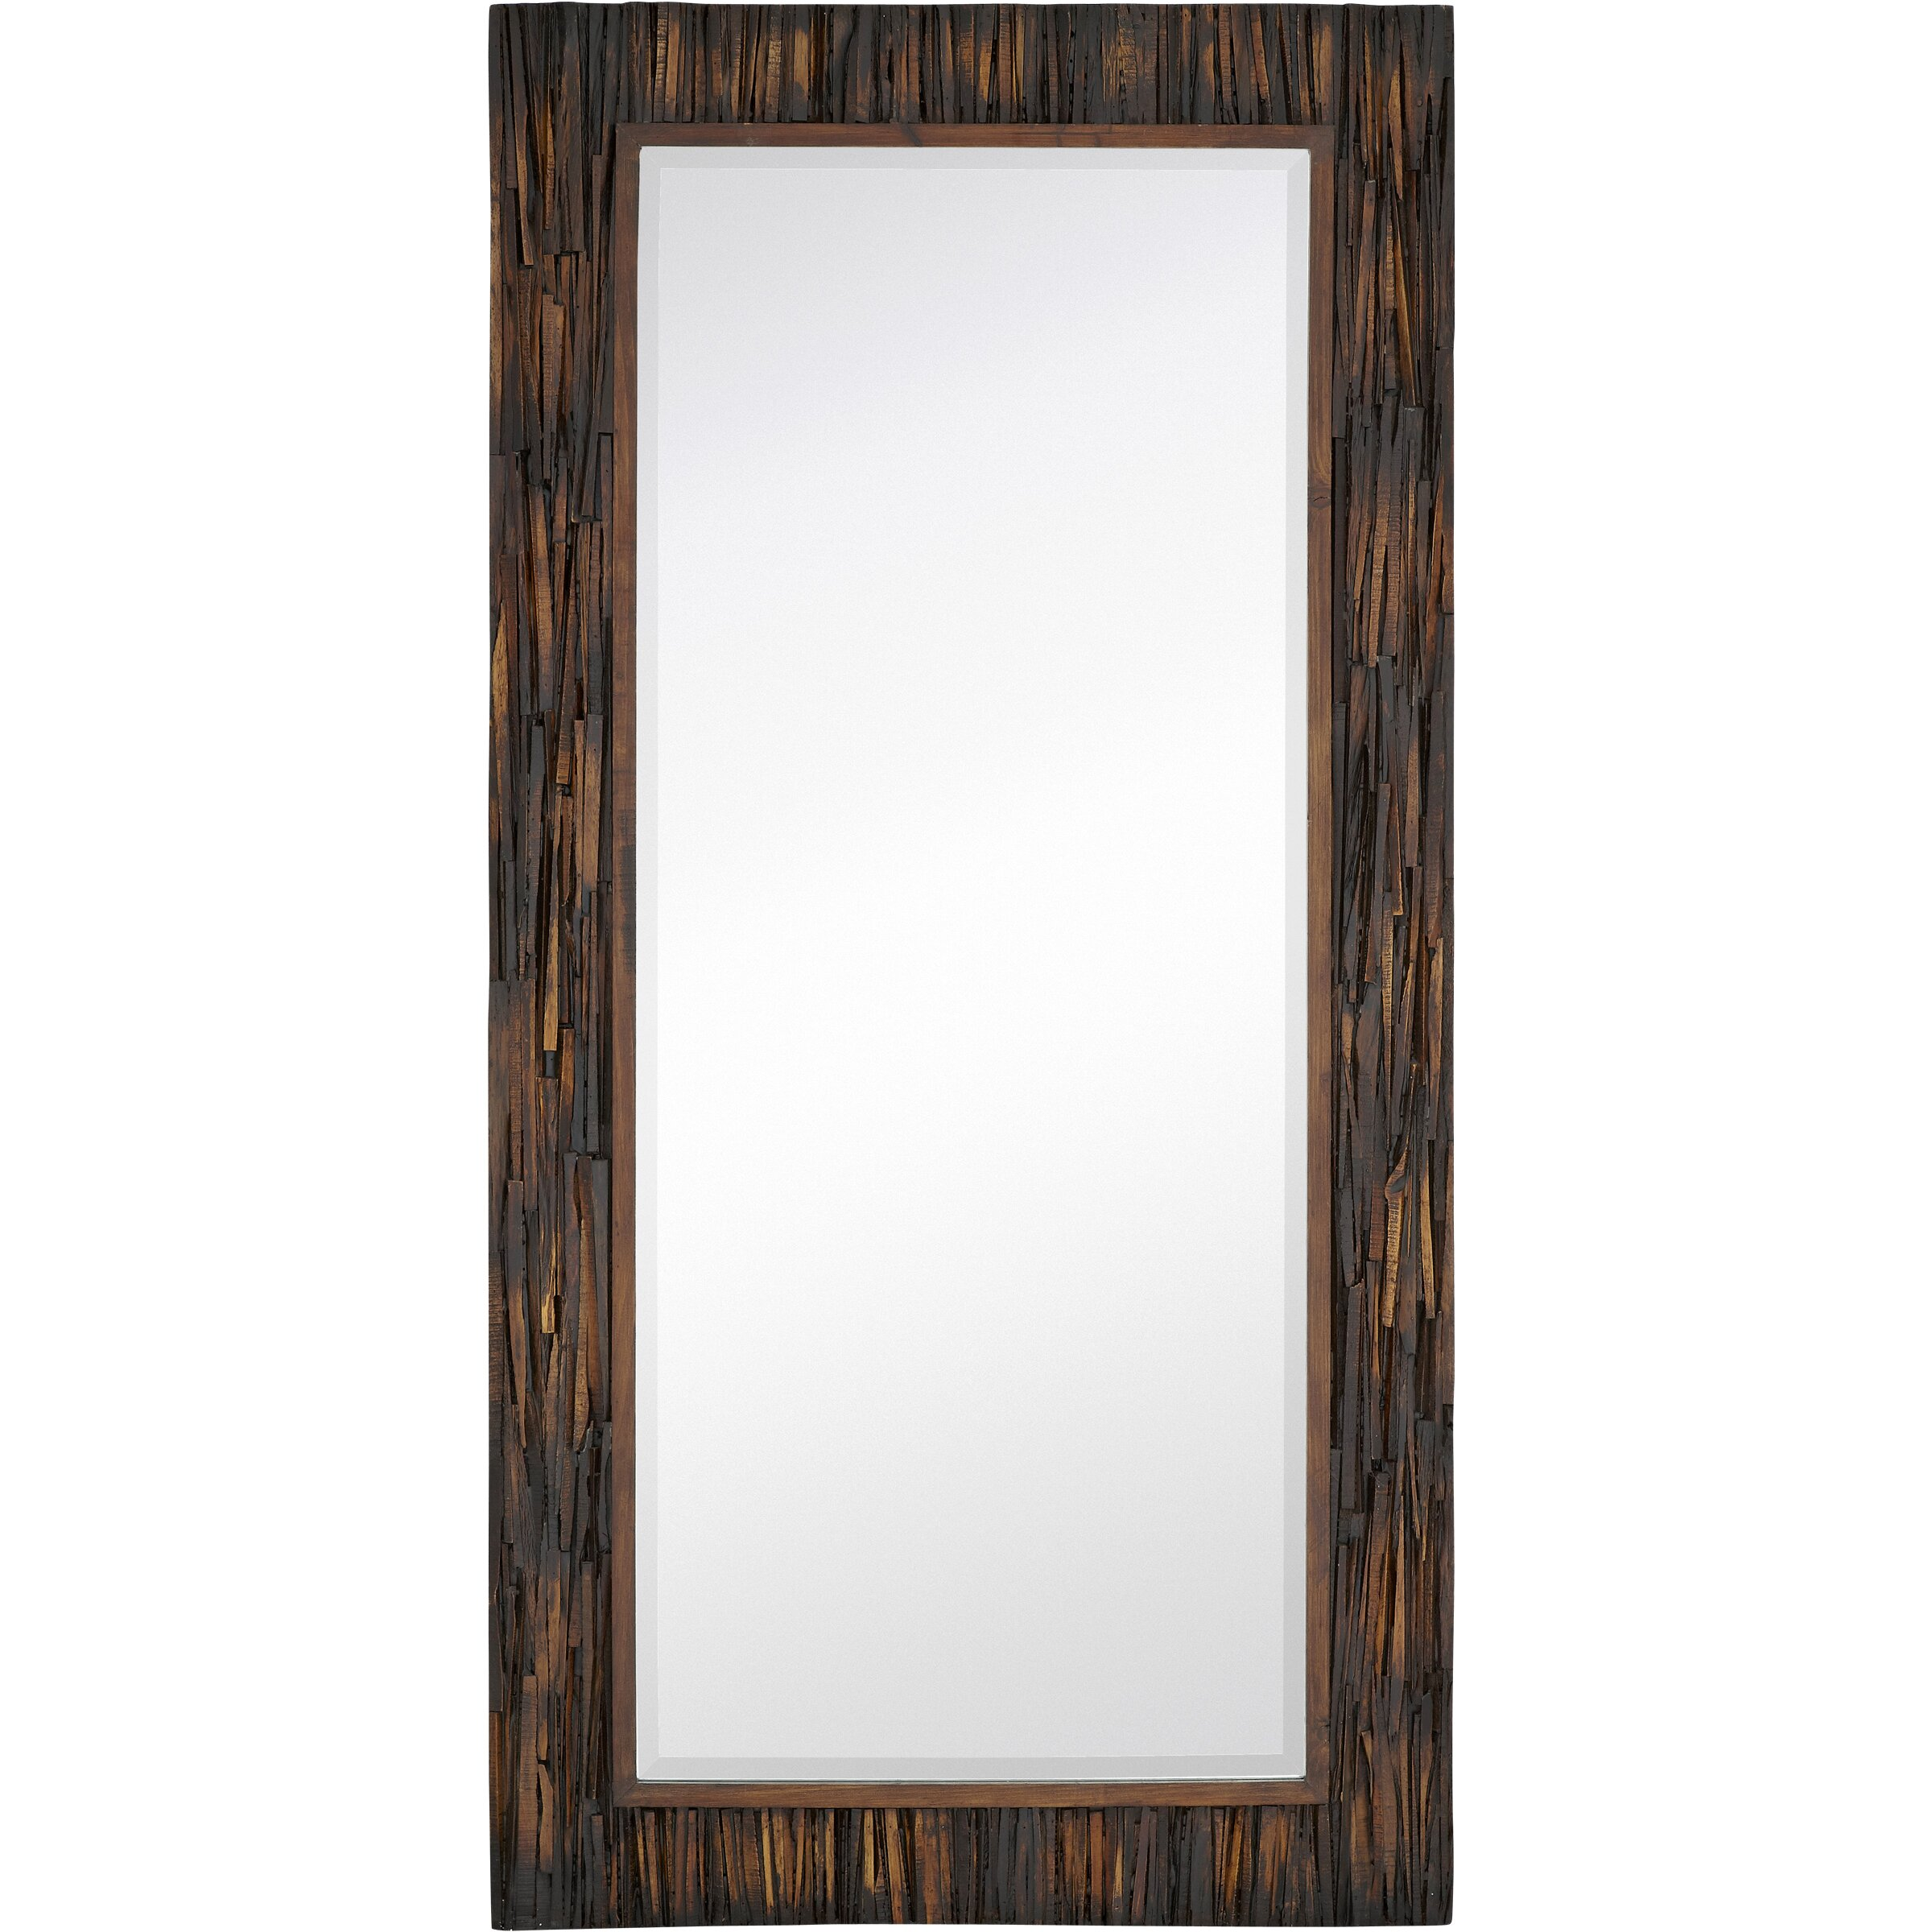 Majestic mirror large scale rectangular natural wood for Accent mirrors